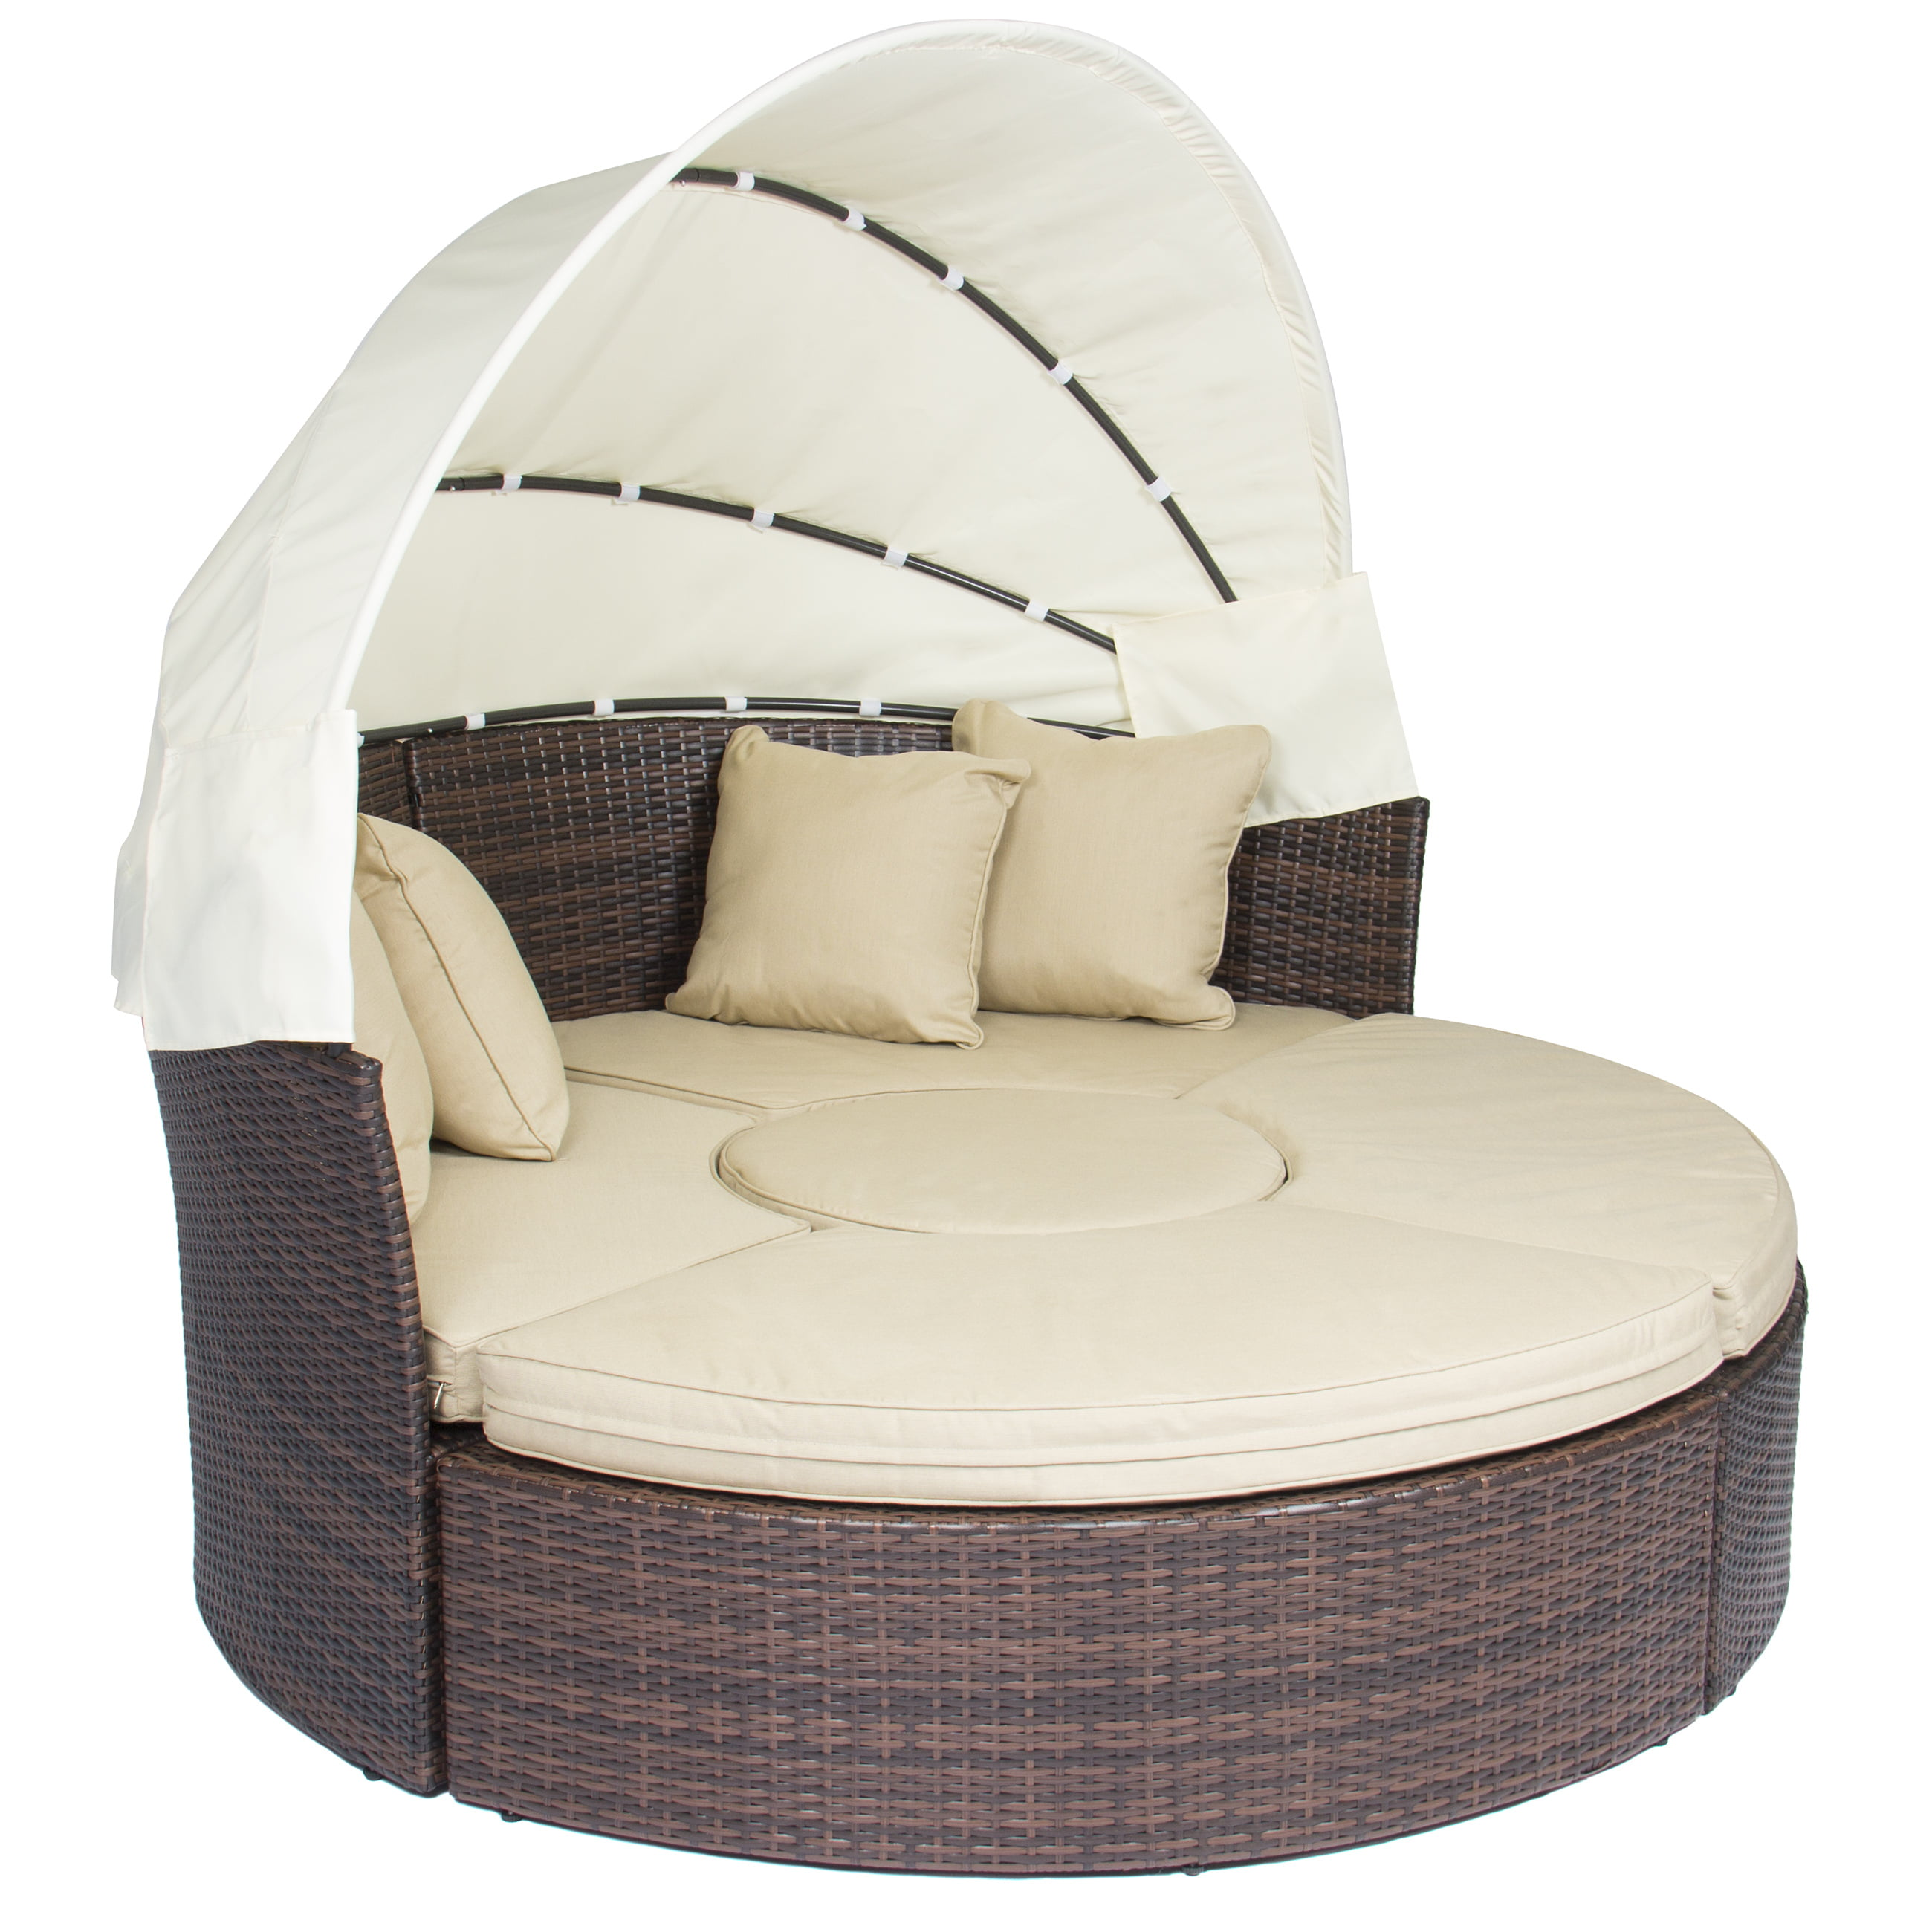 outdoor patio sofa furniture round retractable canopy daybed brown wicker rattan walmartcom